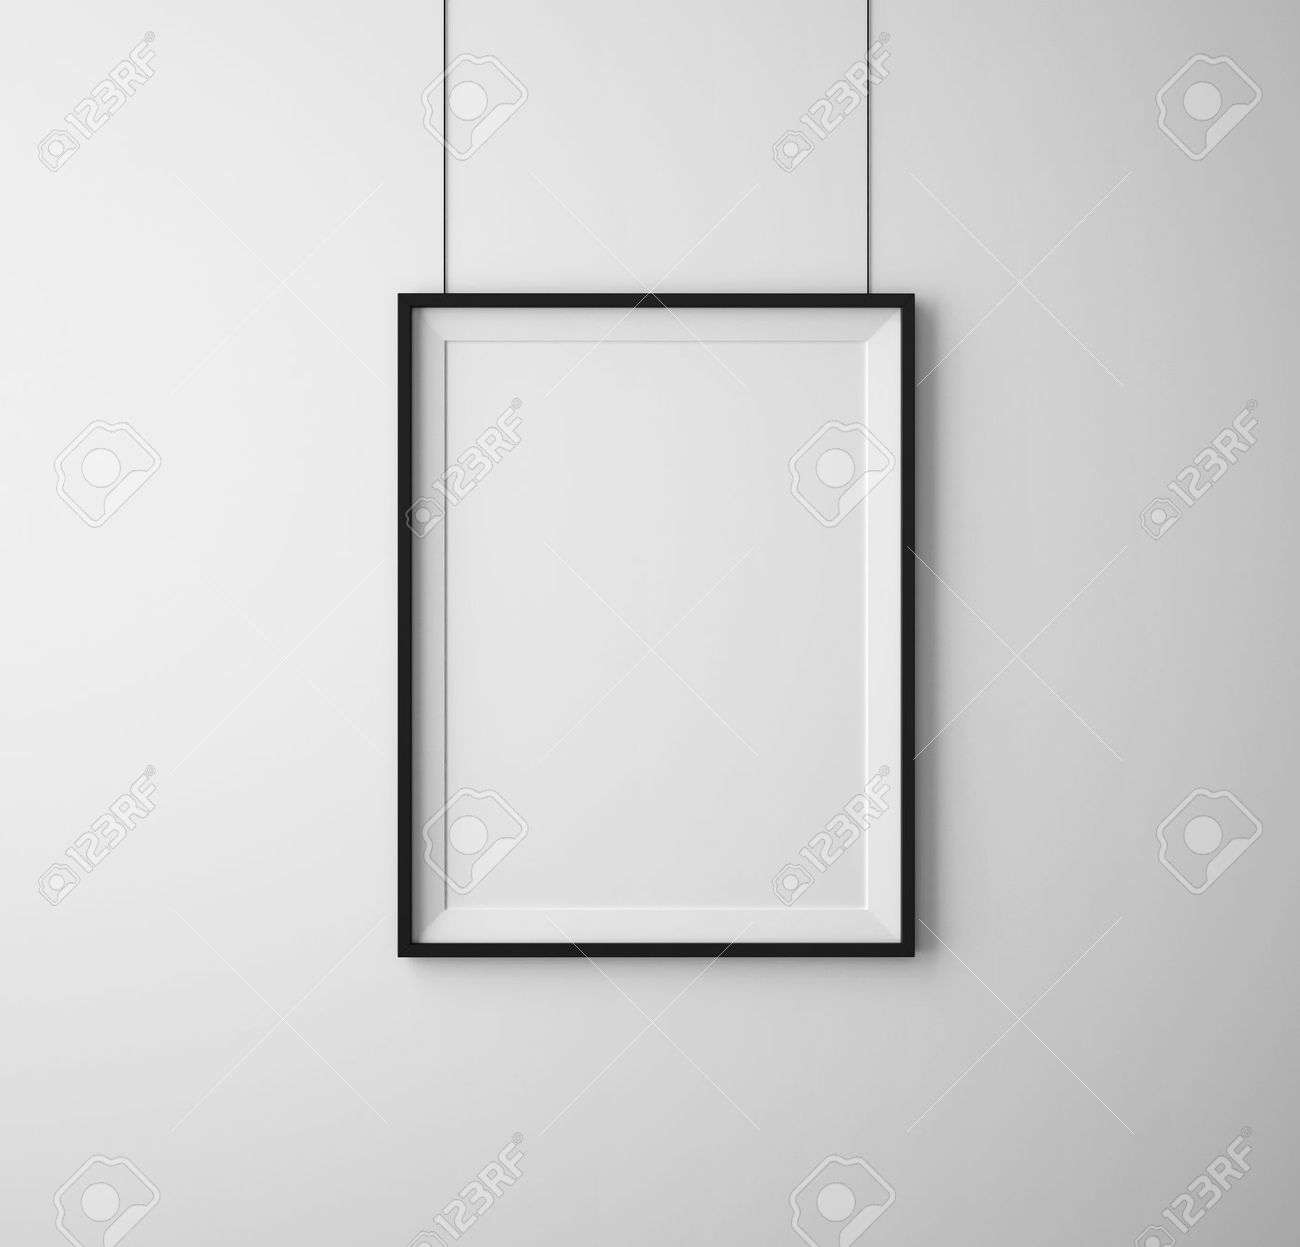 White Wall Frames black frames on white wall stock photo, picture and royalty free